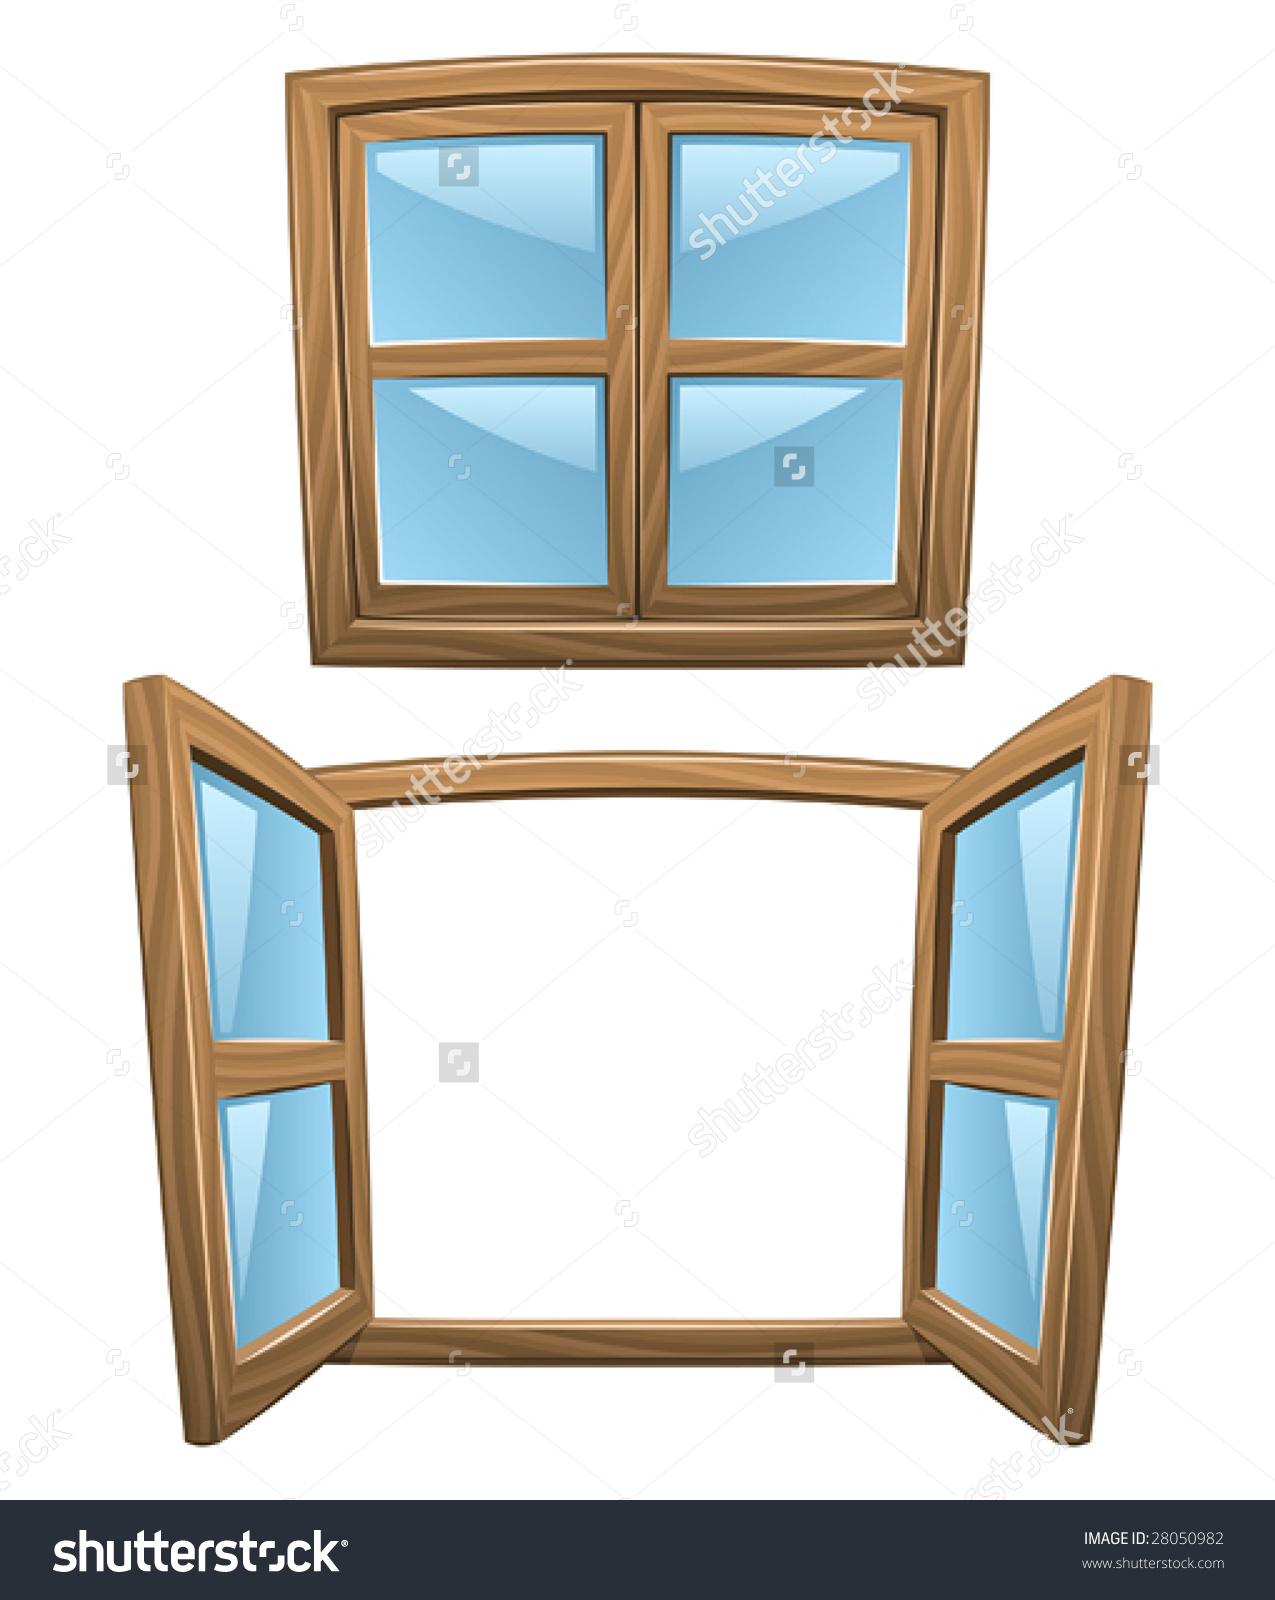 close the window clipart - Window Clip Frame